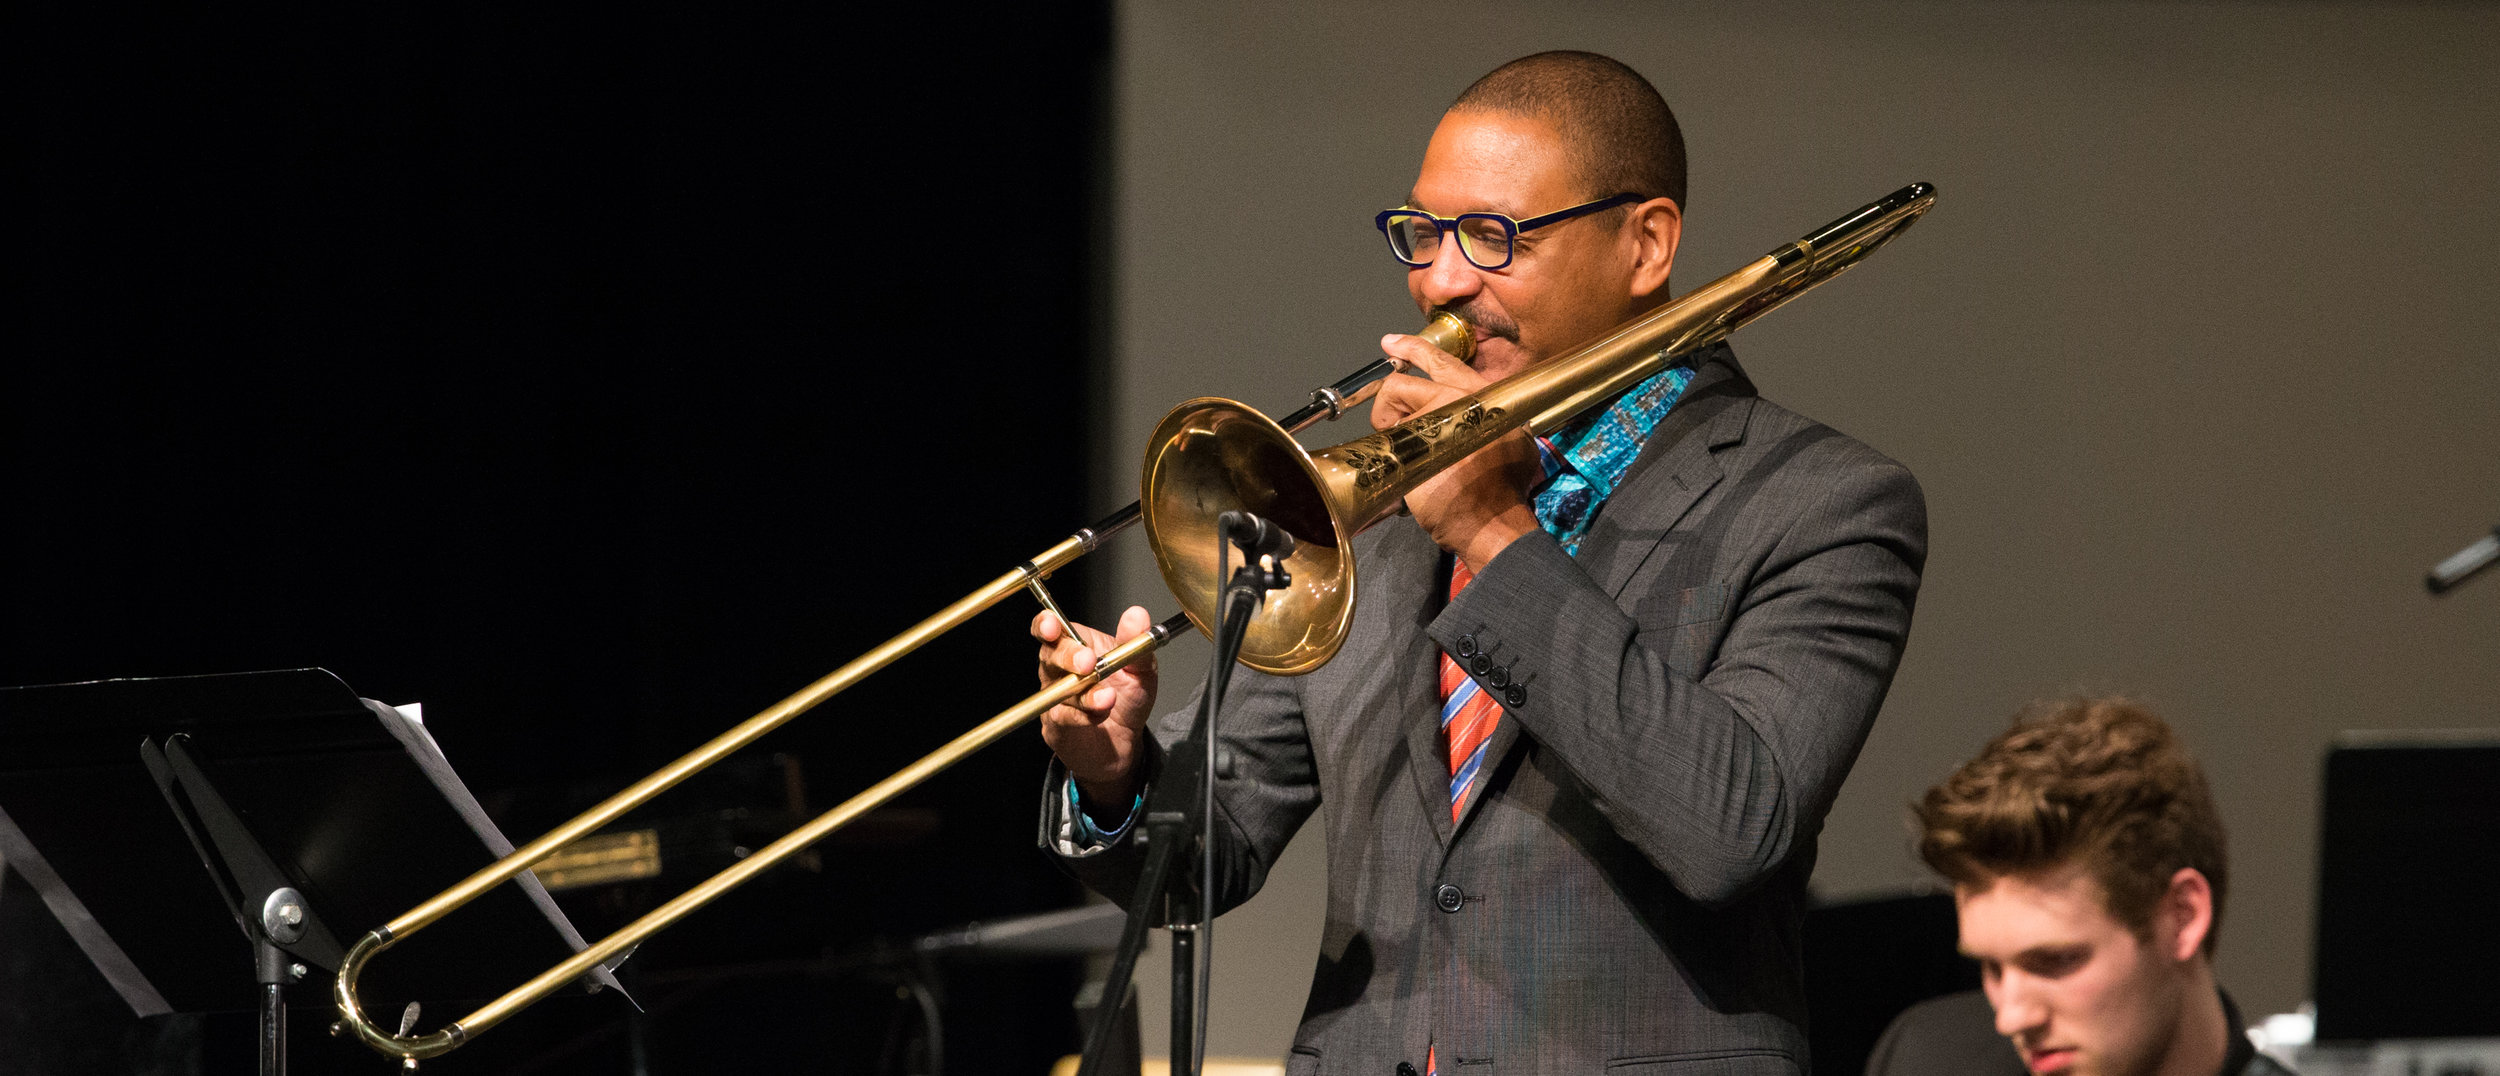 Special guest Delfeayo Marsalis on the trombone